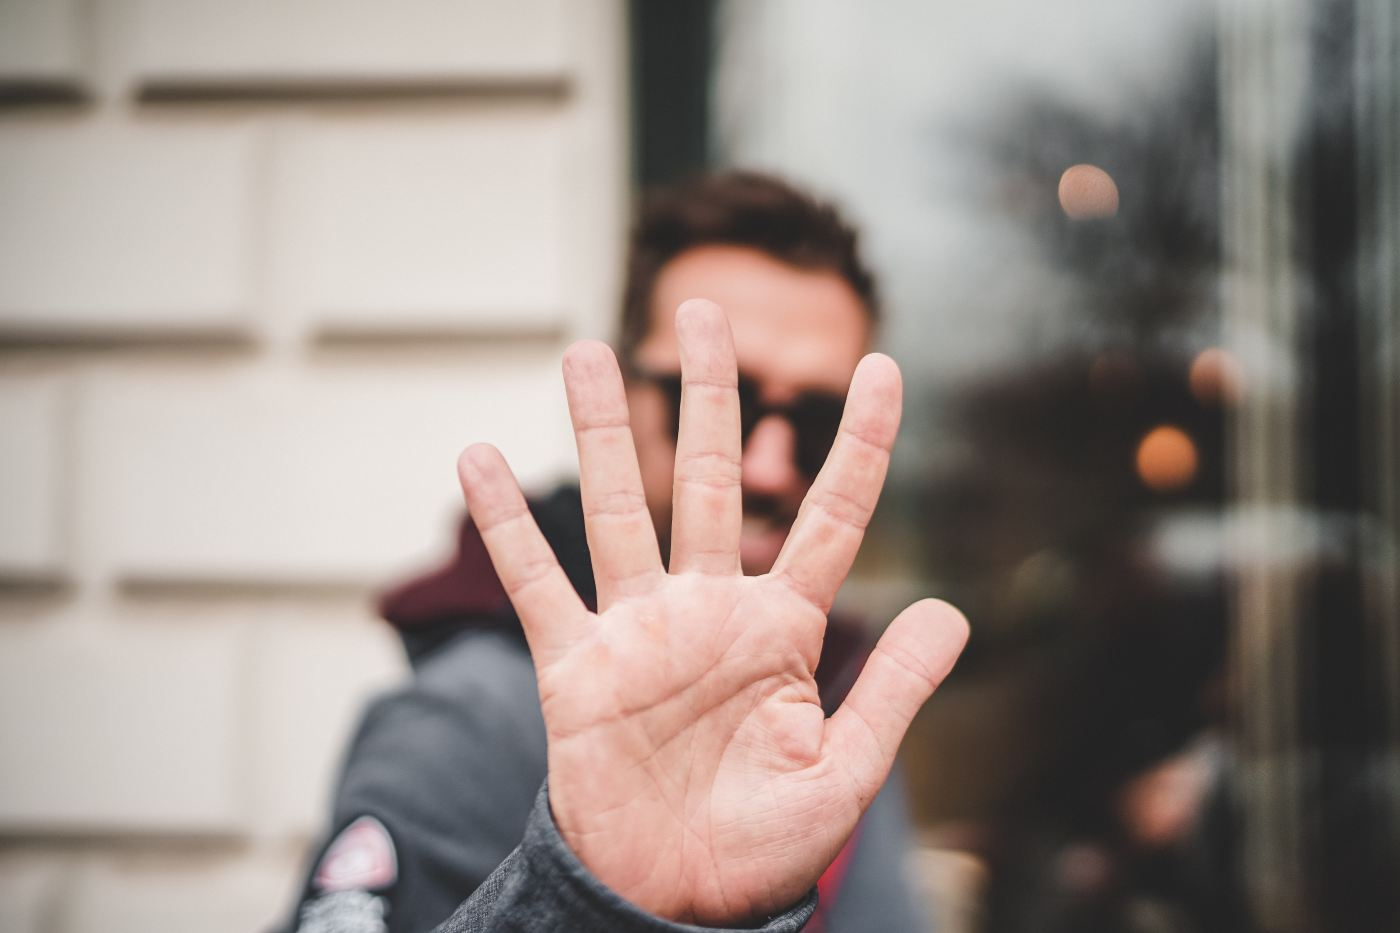 Man holding up 5 fingers to camera